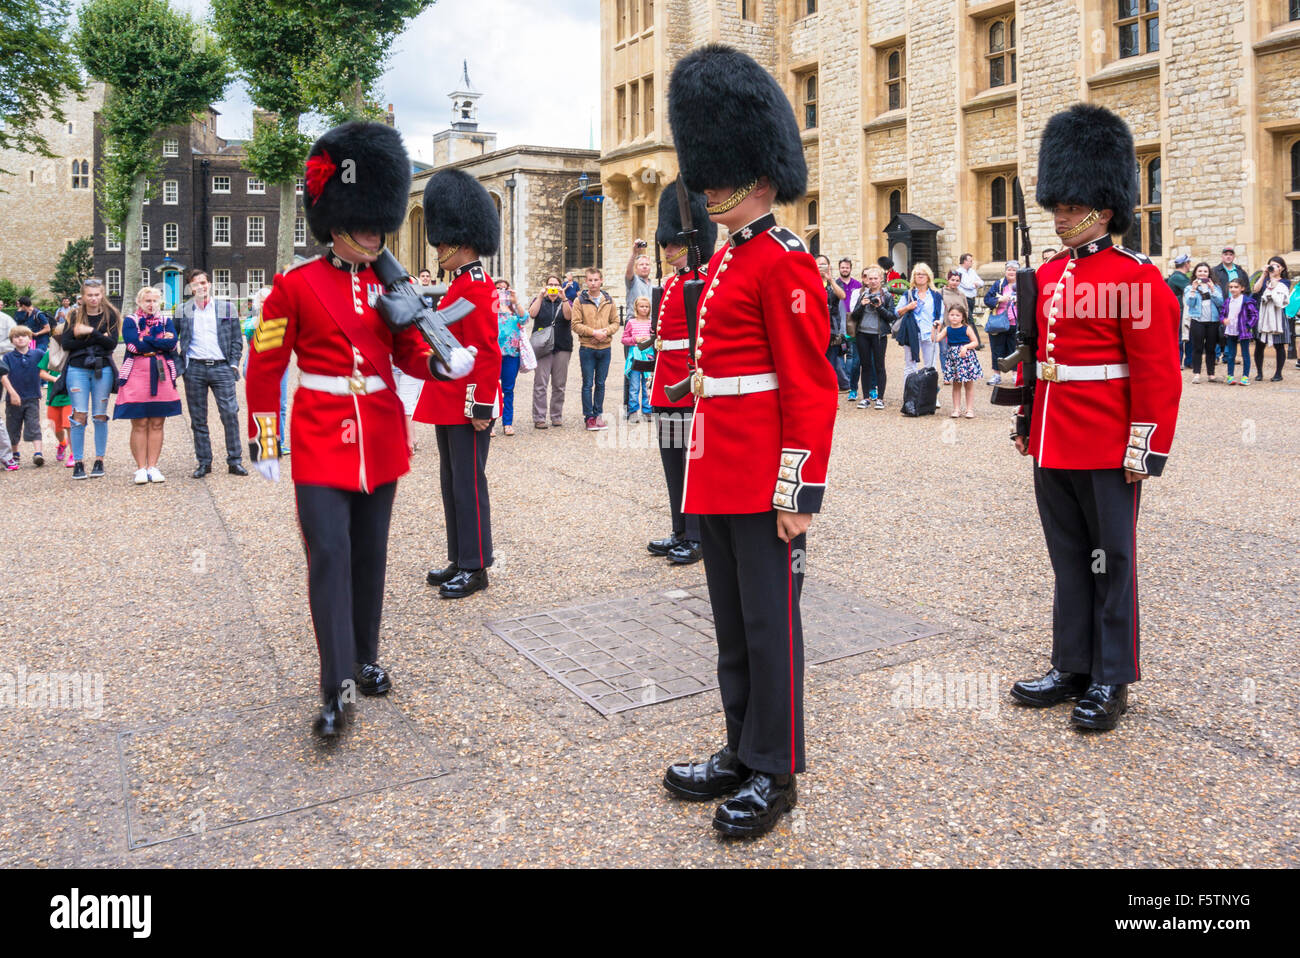 Coldstream guards being inspected Changing the guard at the Jewel house Tower of London City of London England GB - Stock Image